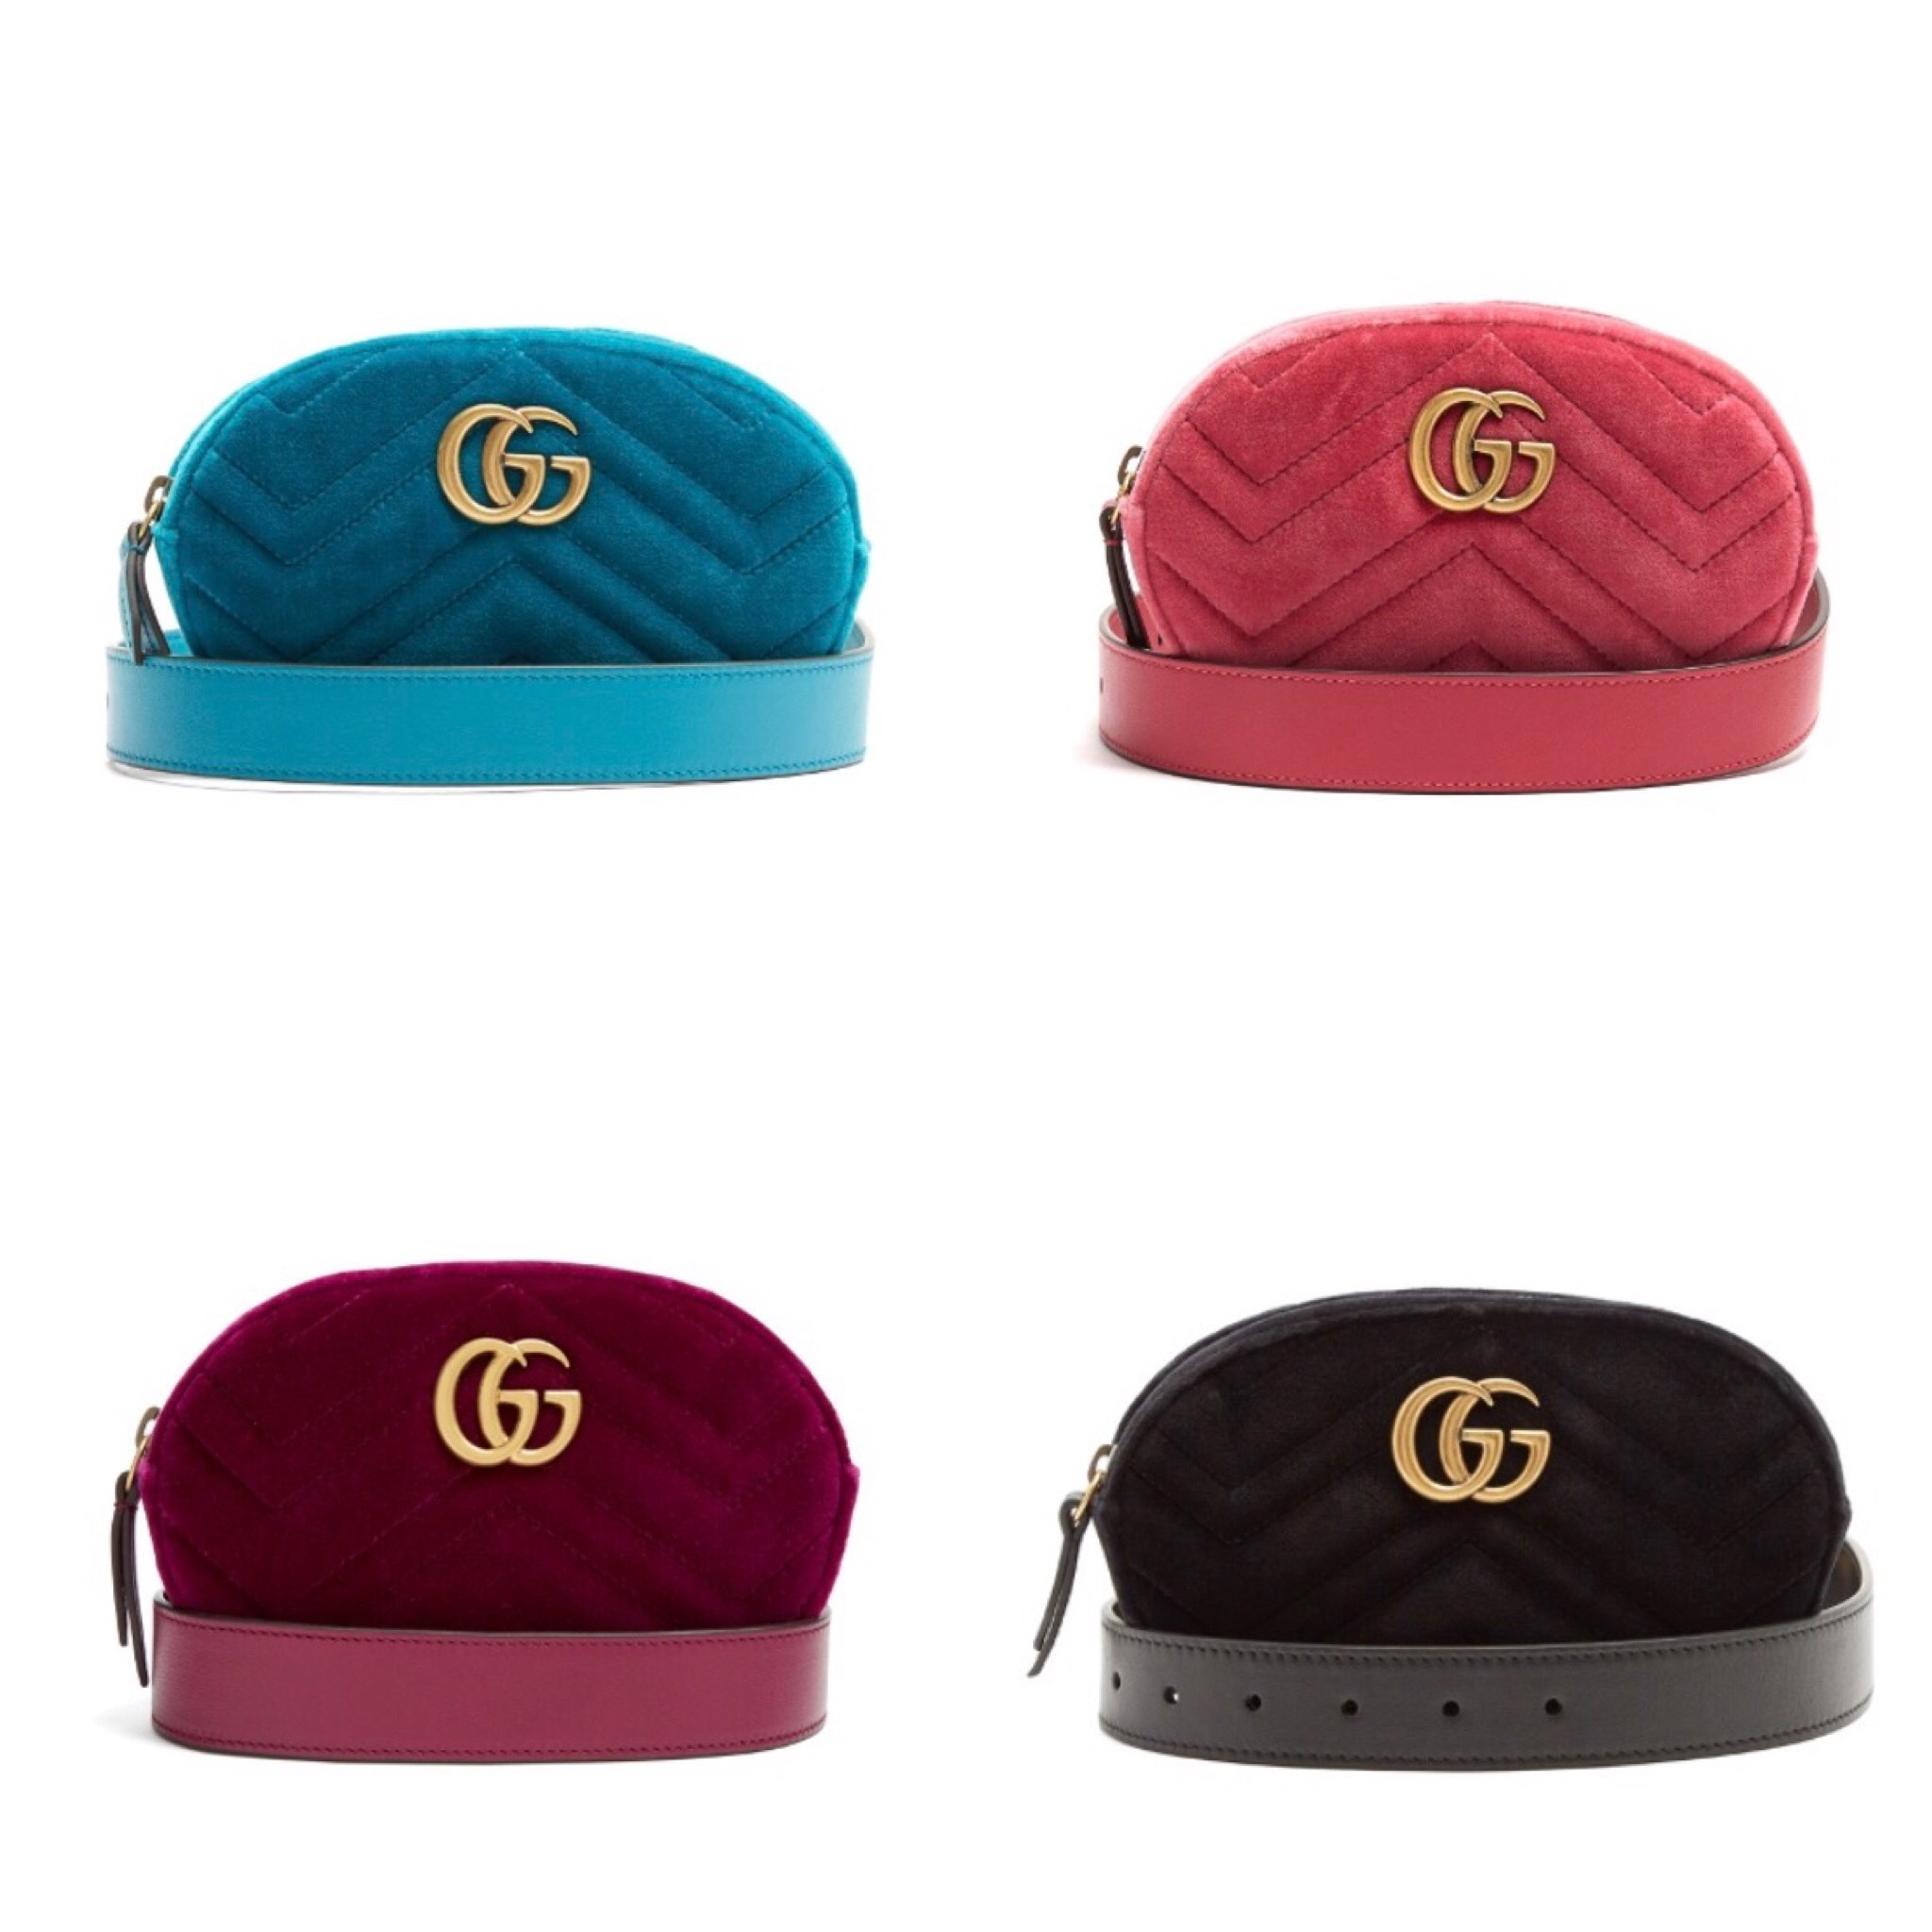 ☆GUCCI☆関税込♪NEW♪GG Marmont キルト ウエストバッグ